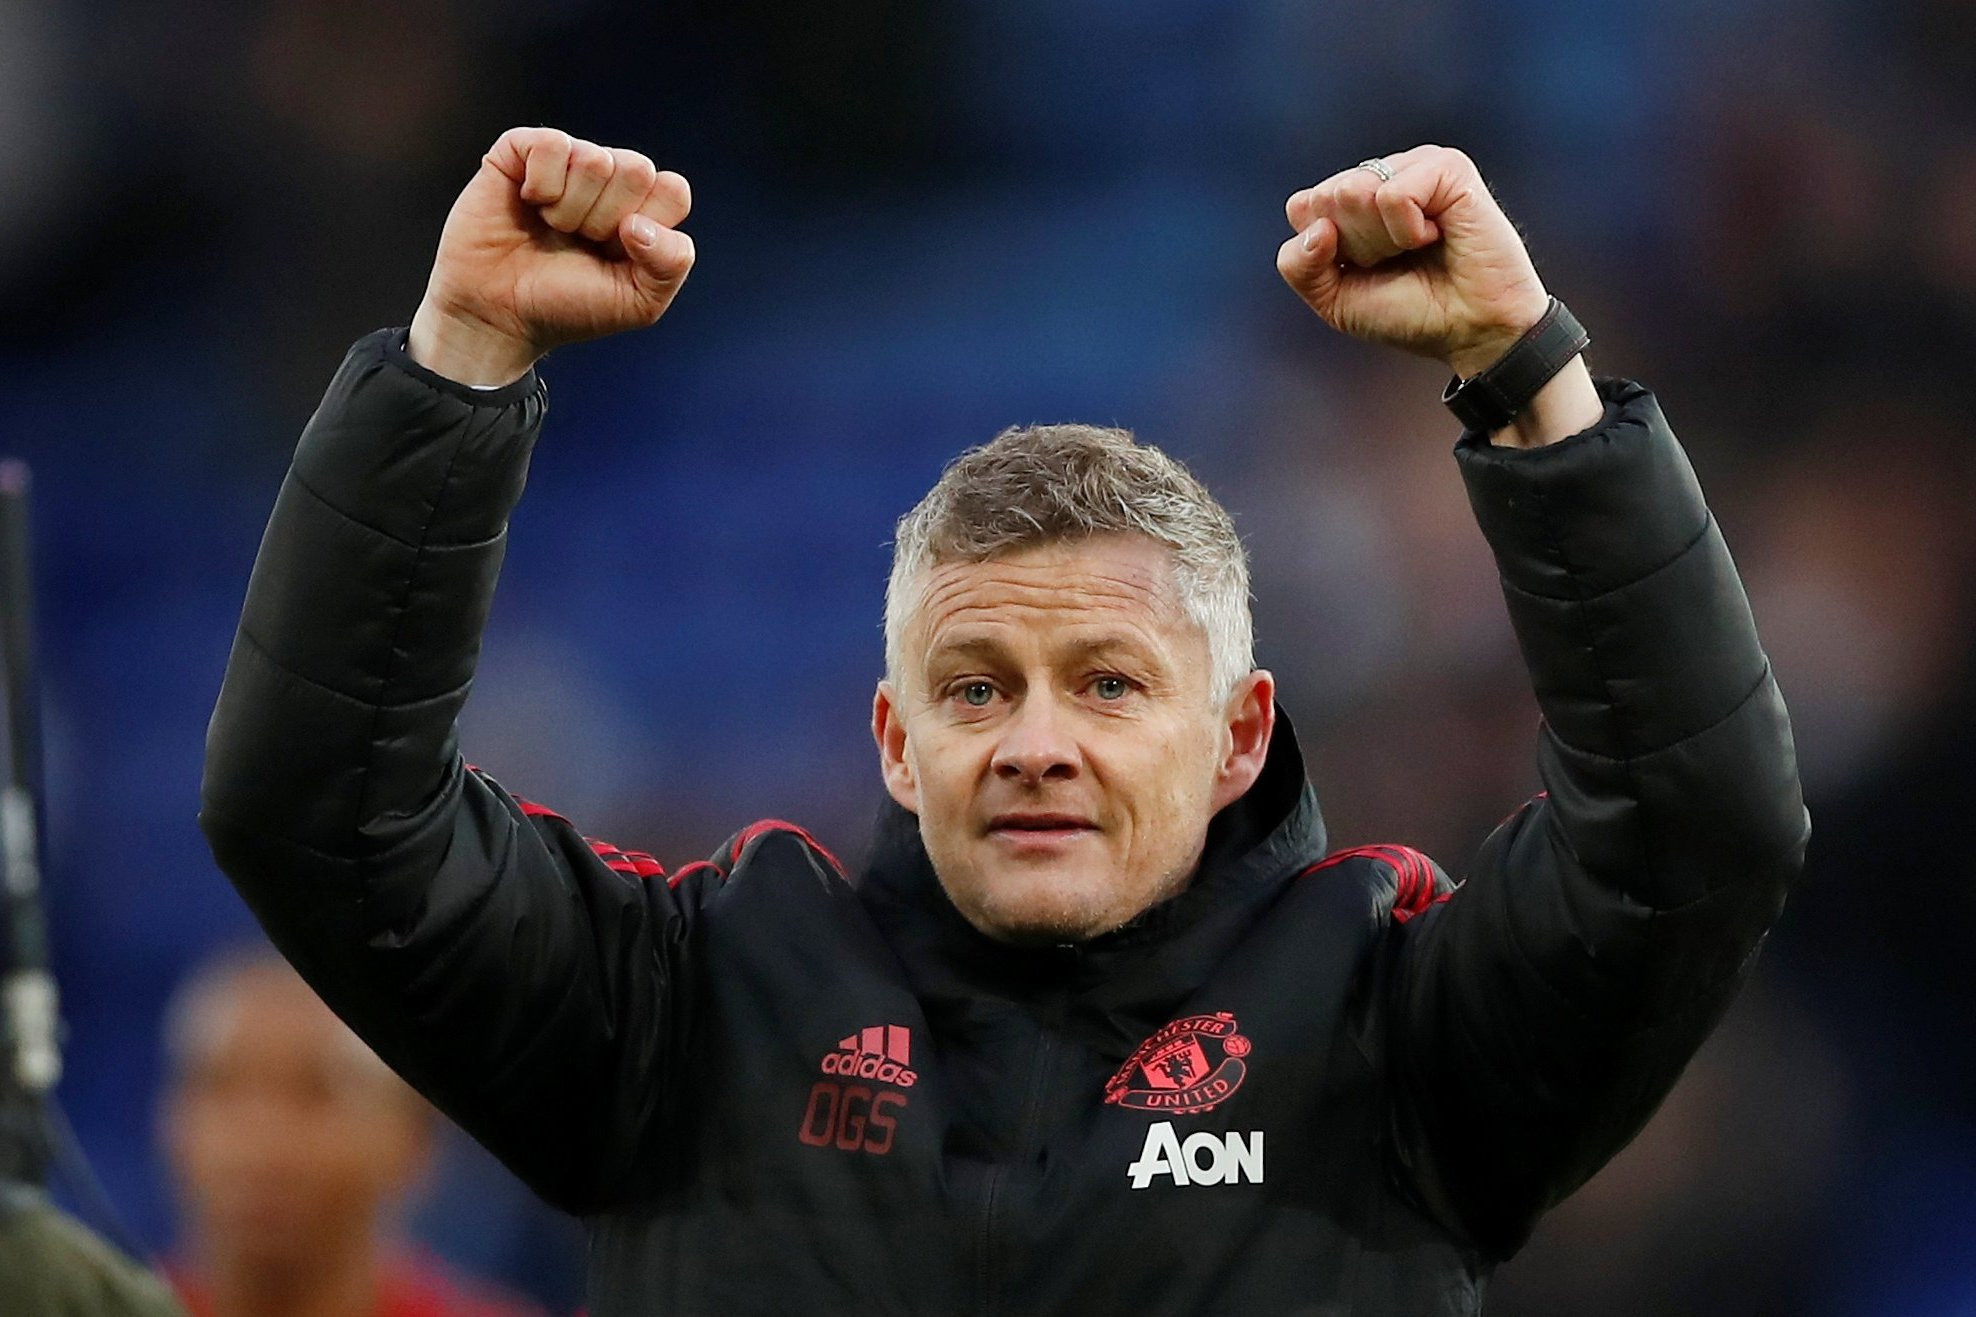 Solskjaer 'set to be named full-time Manchester United boss' after winning 10 games out of 11